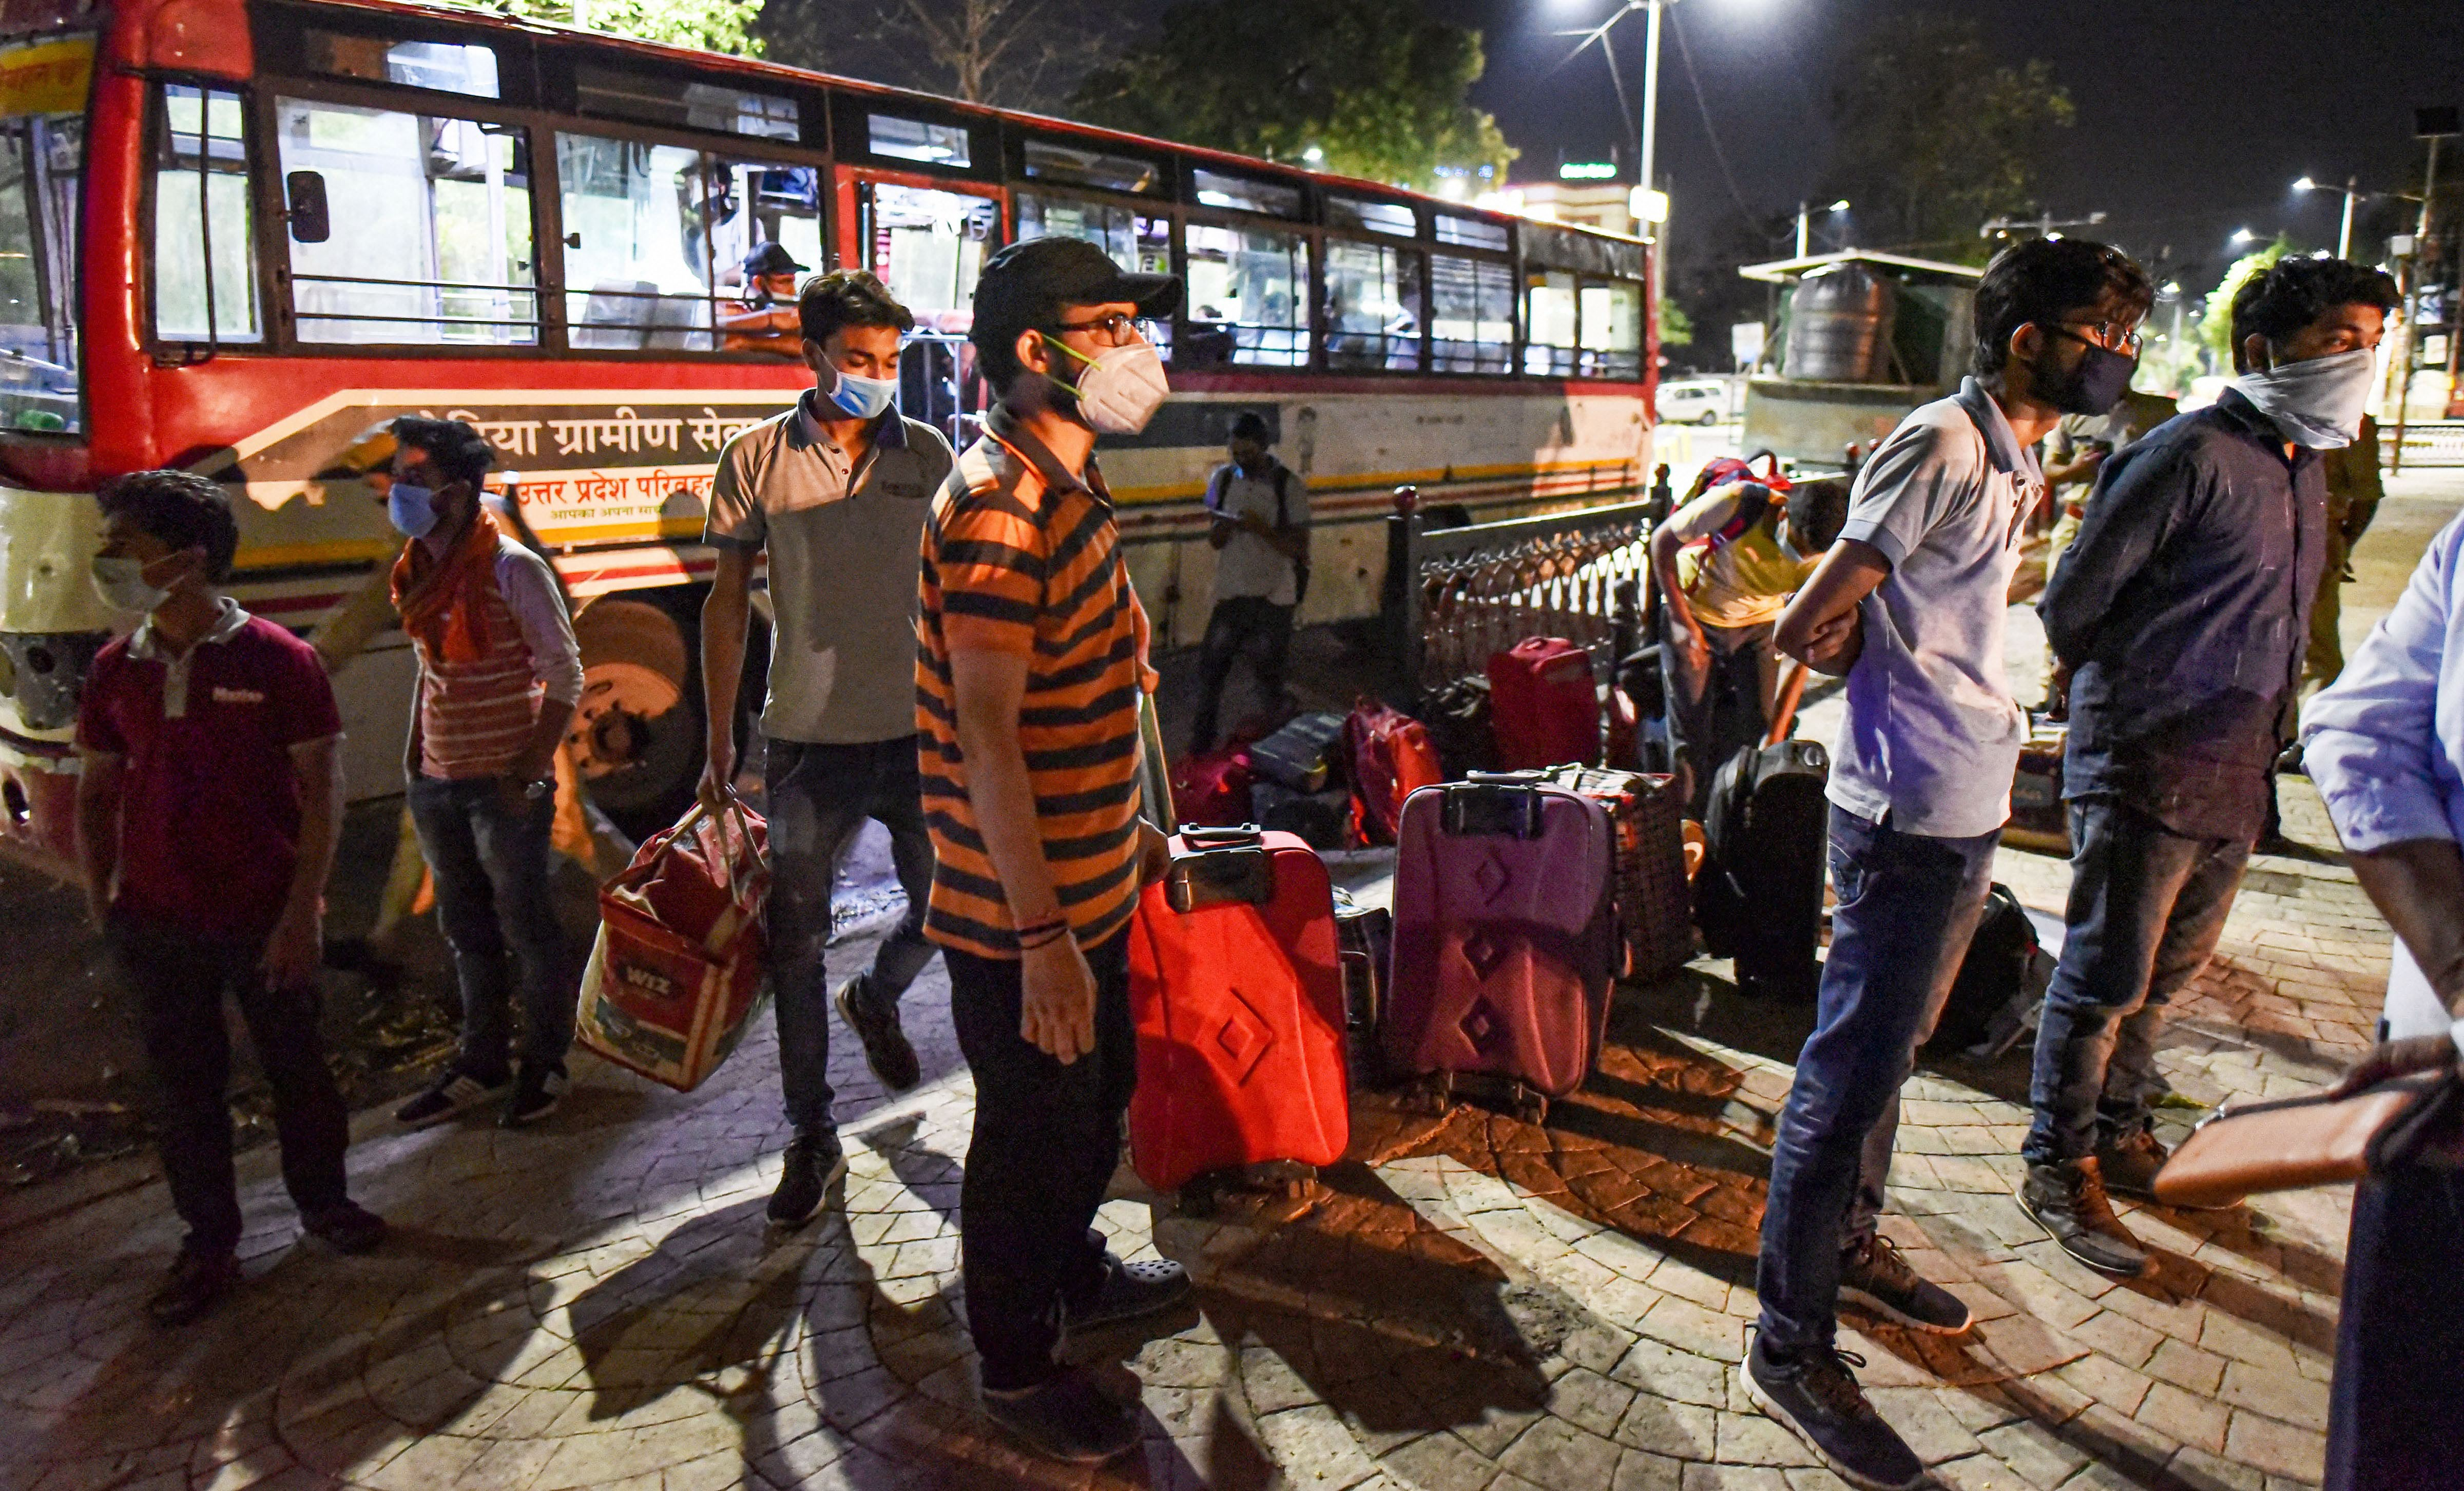 Stranded students from Kota alight the bus arranged by UP government as they arrive at their native place during the nationwide lockdown, imposed as a preventive measure against the coronavirus, in Prayagraj, Monday, April 20, 2020.